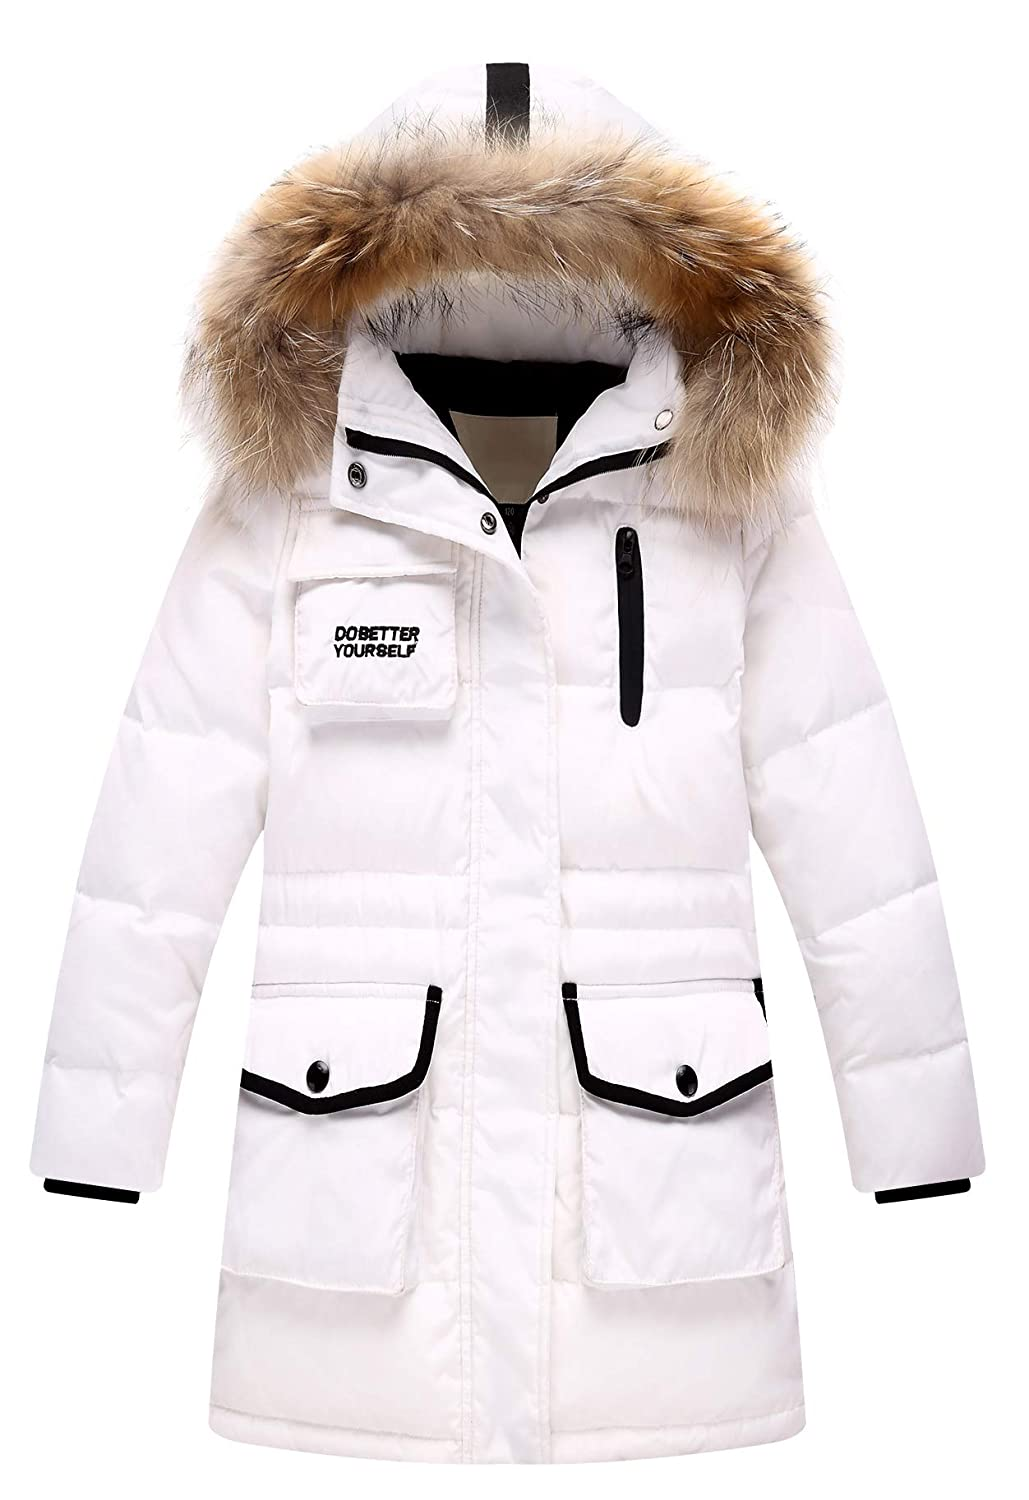 jiayou Child Girl Solid Hooded Thick Winter Mid Long Duck Down Overcoat with Fur Trim USVR020